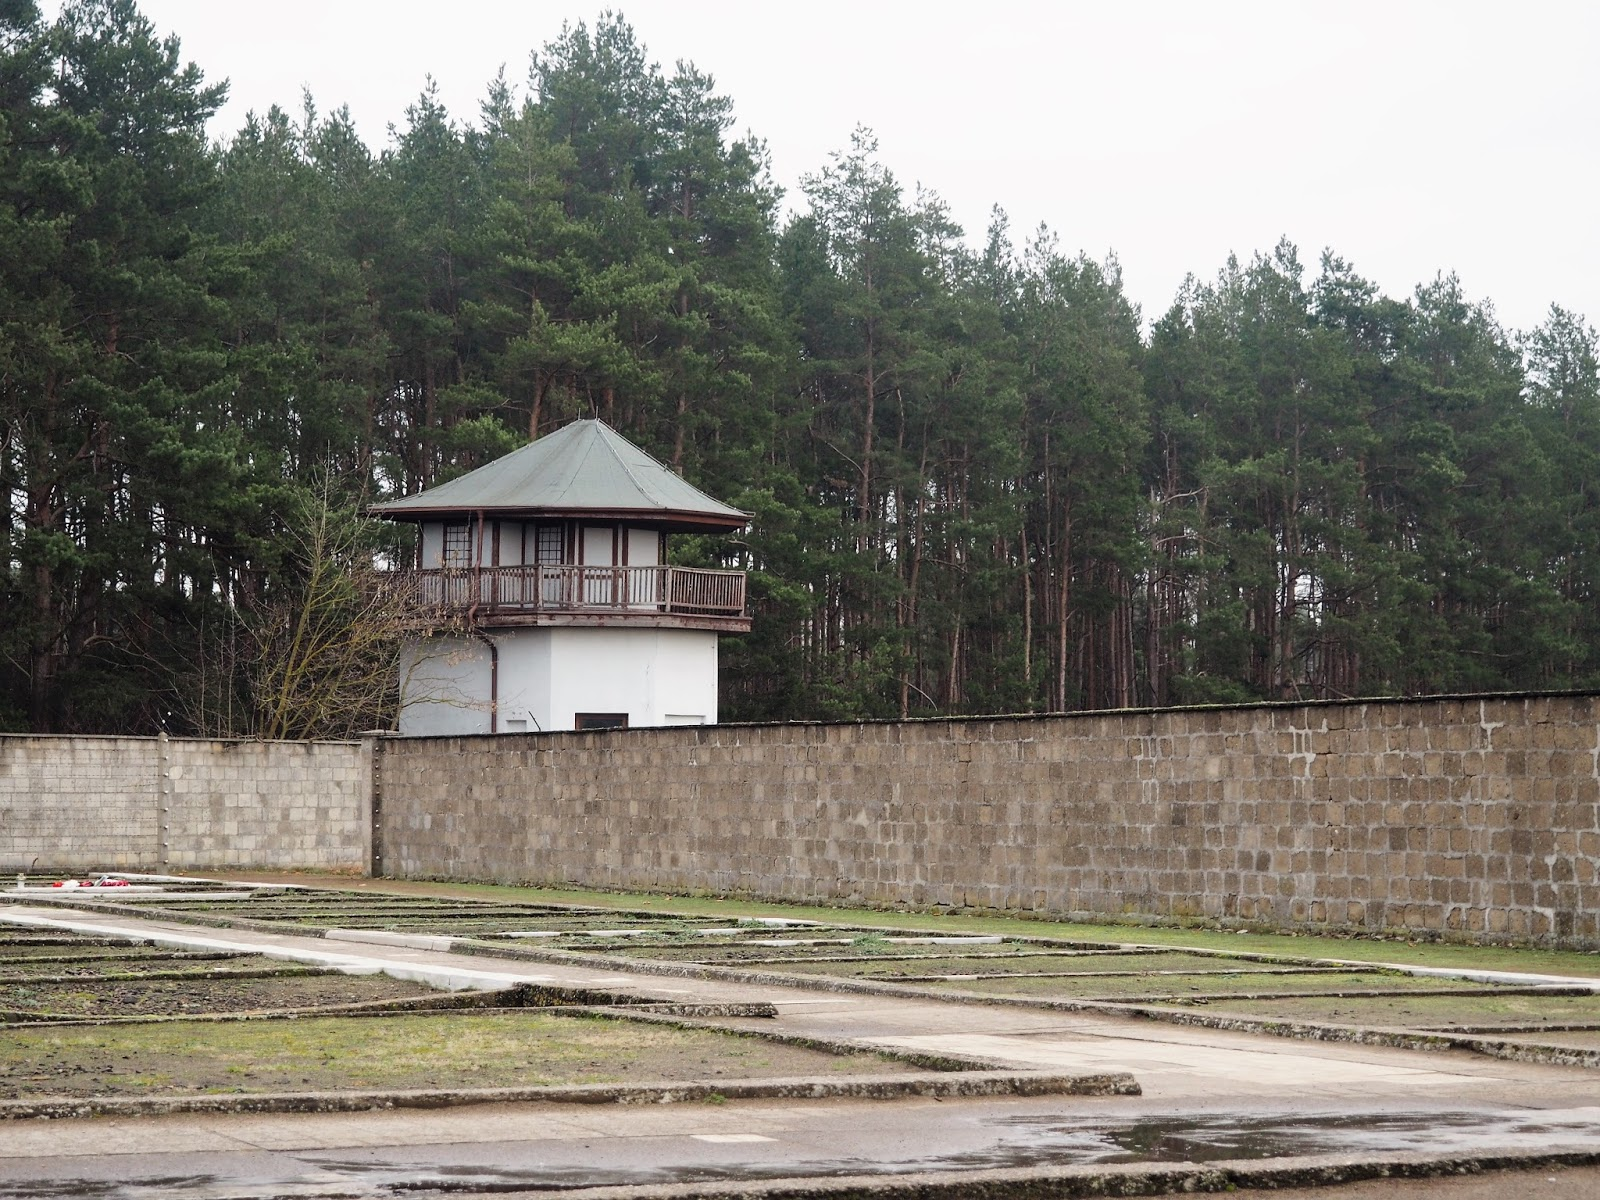 Sachsenhausen Concentration Camp guard tower